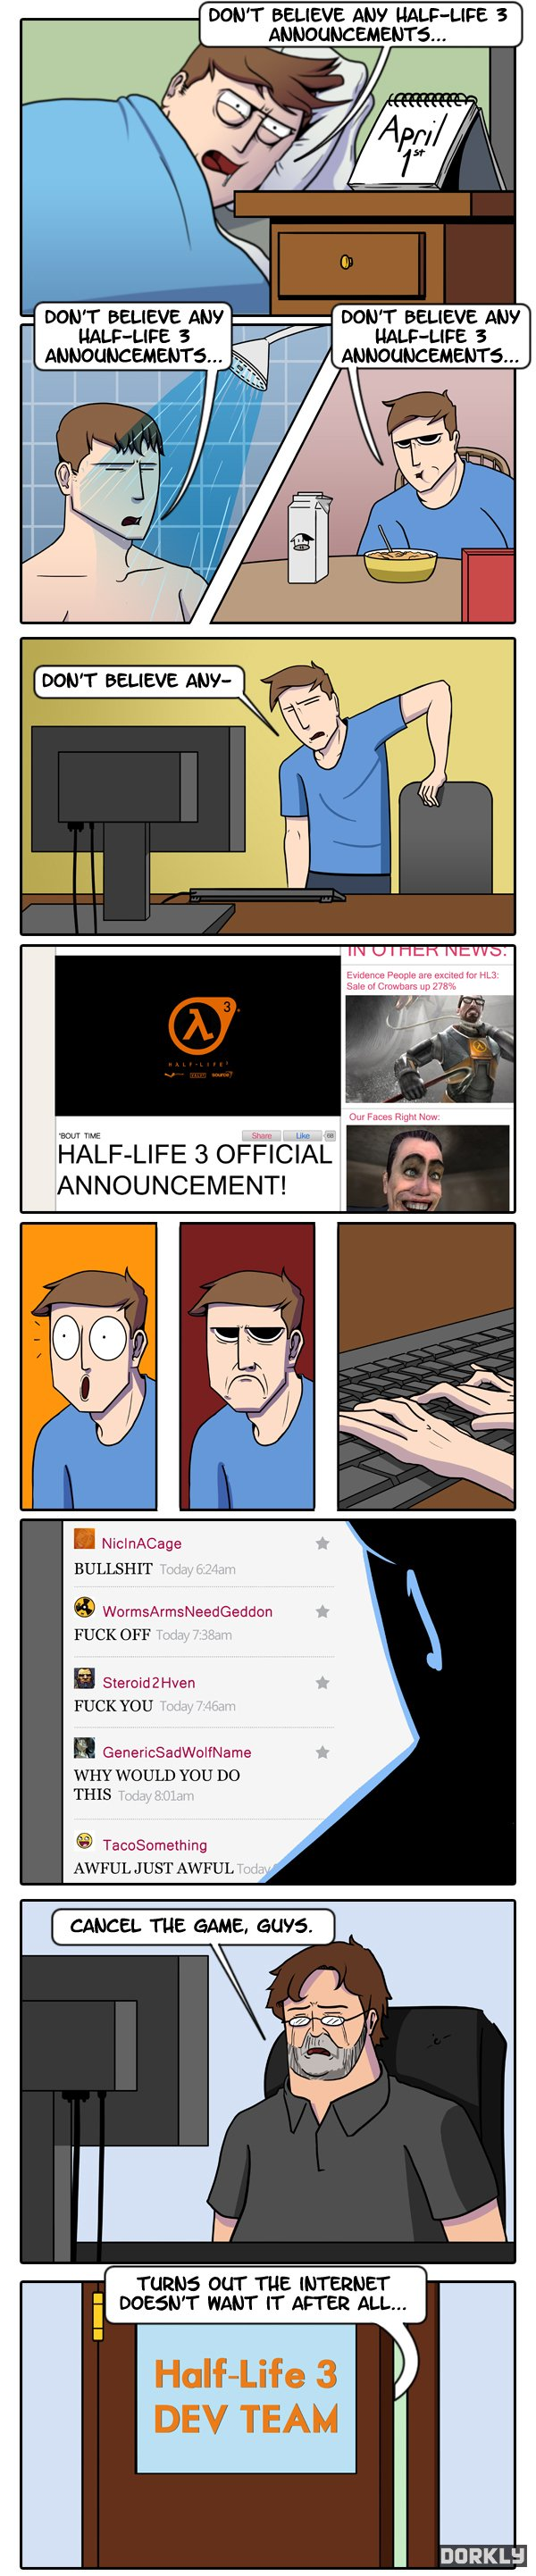 Don't believe any Half-Life 3 announcements.jpg